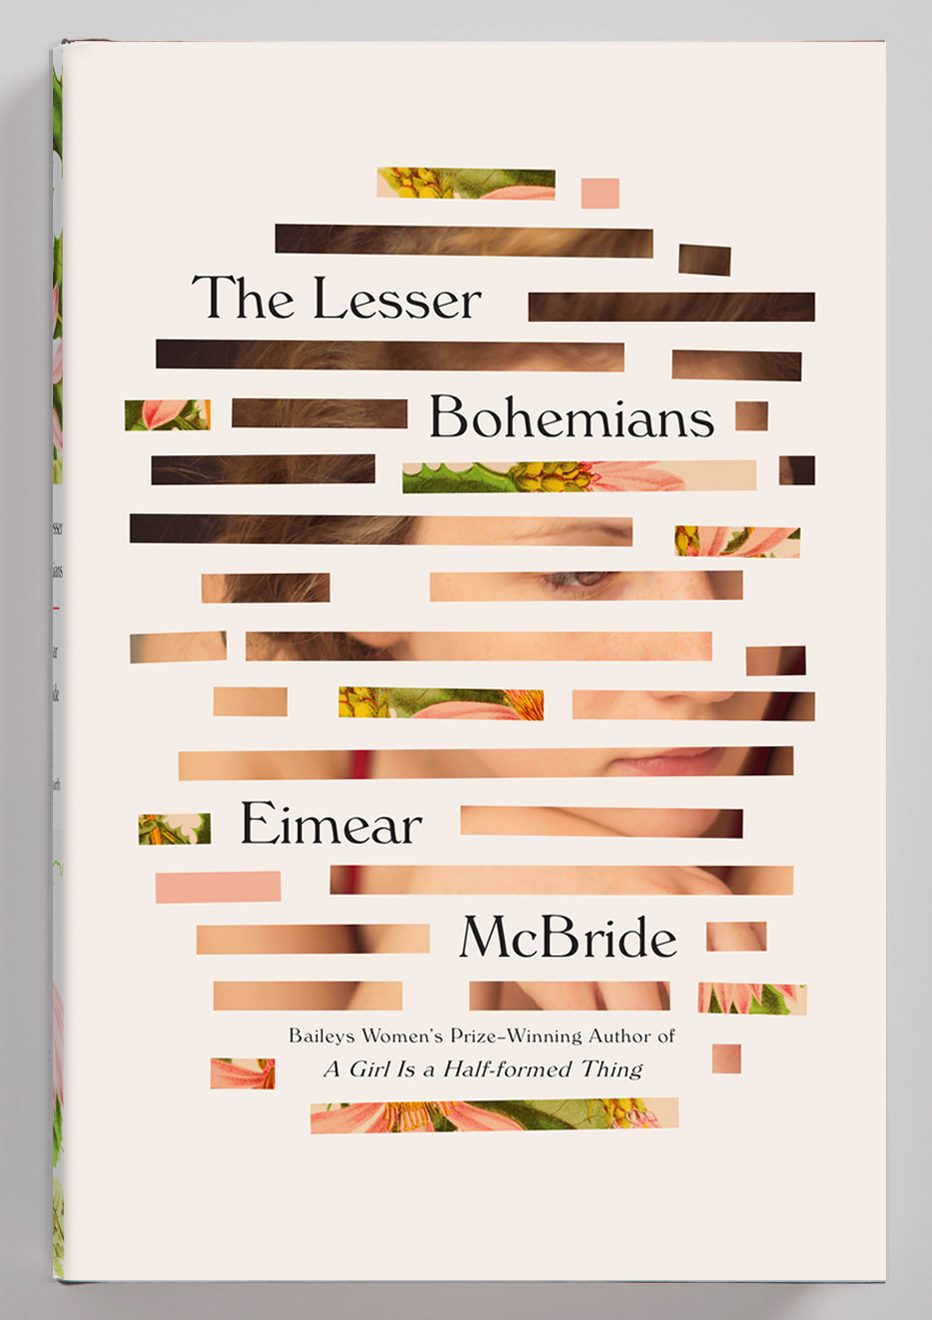 Learn the about the book cover design of The Lesser Bohemians.